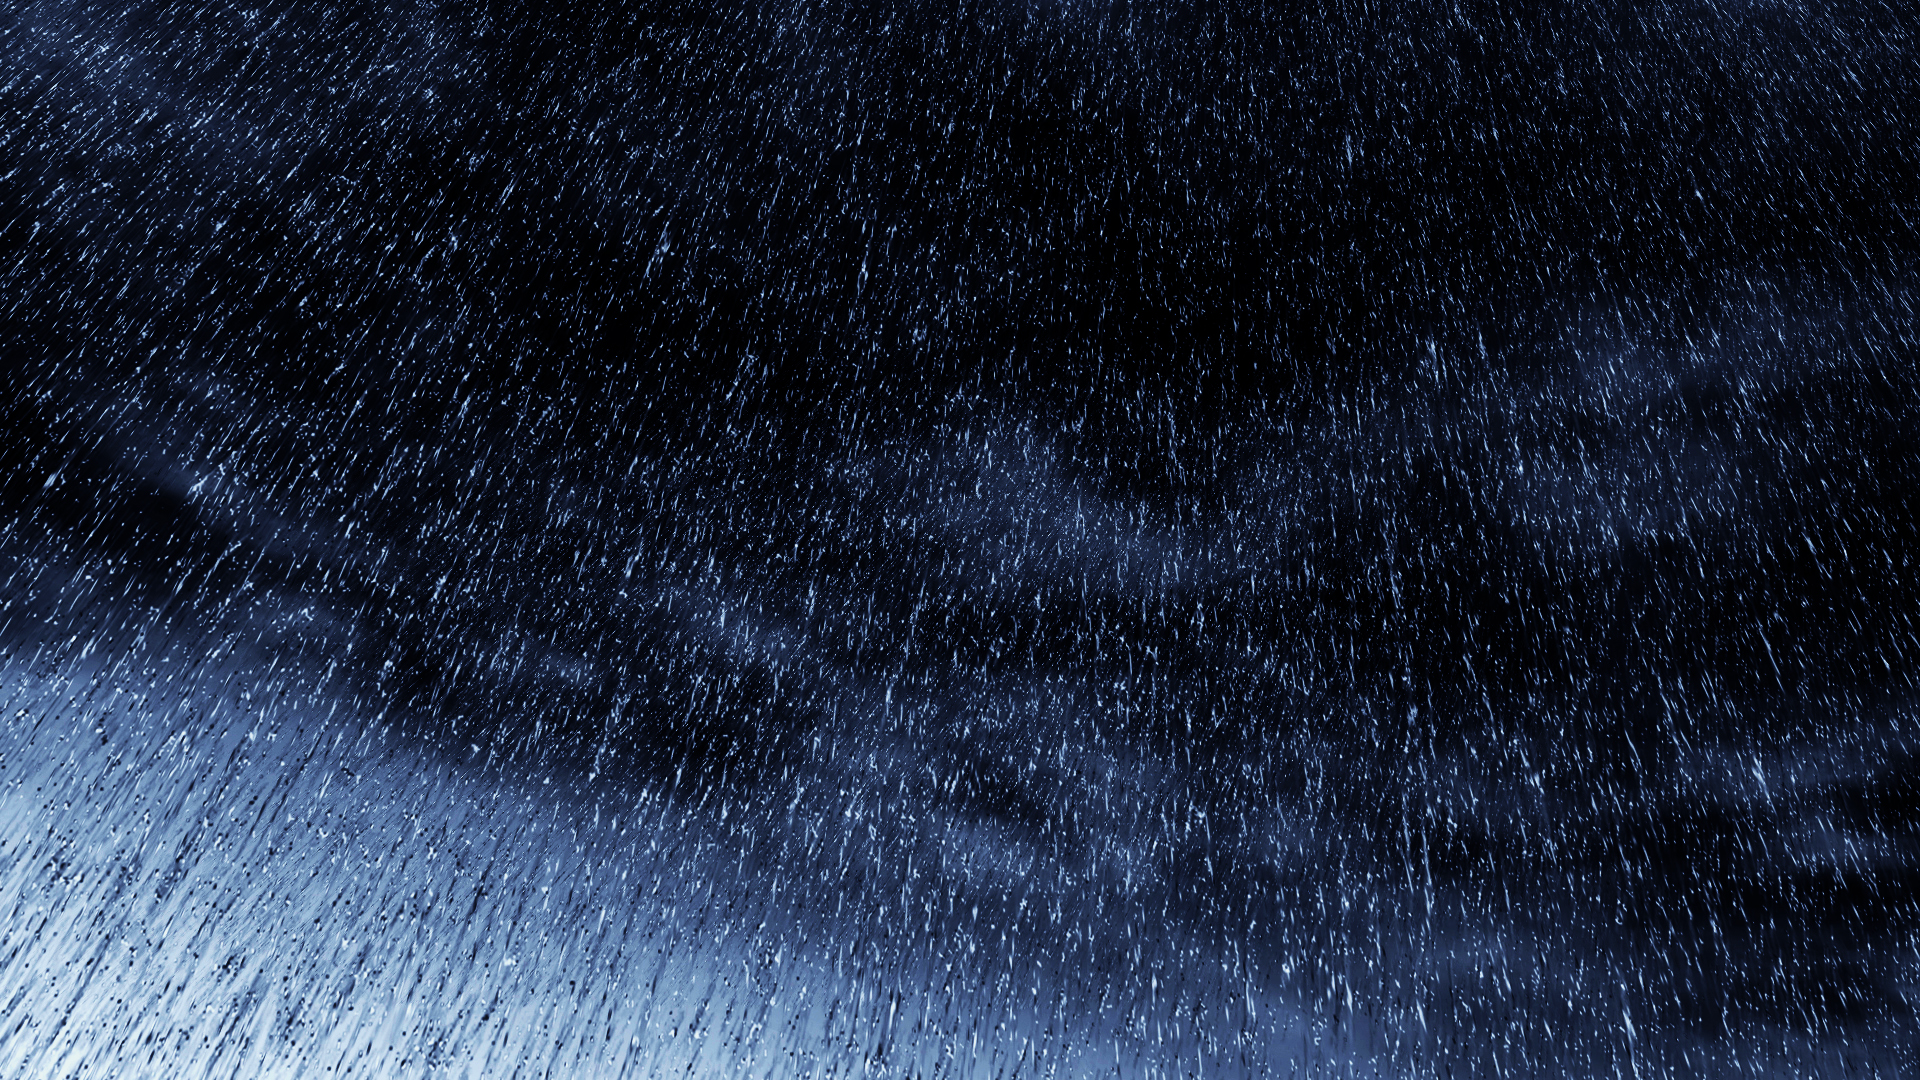 4k Rain Wallpapers High Quality Download Free